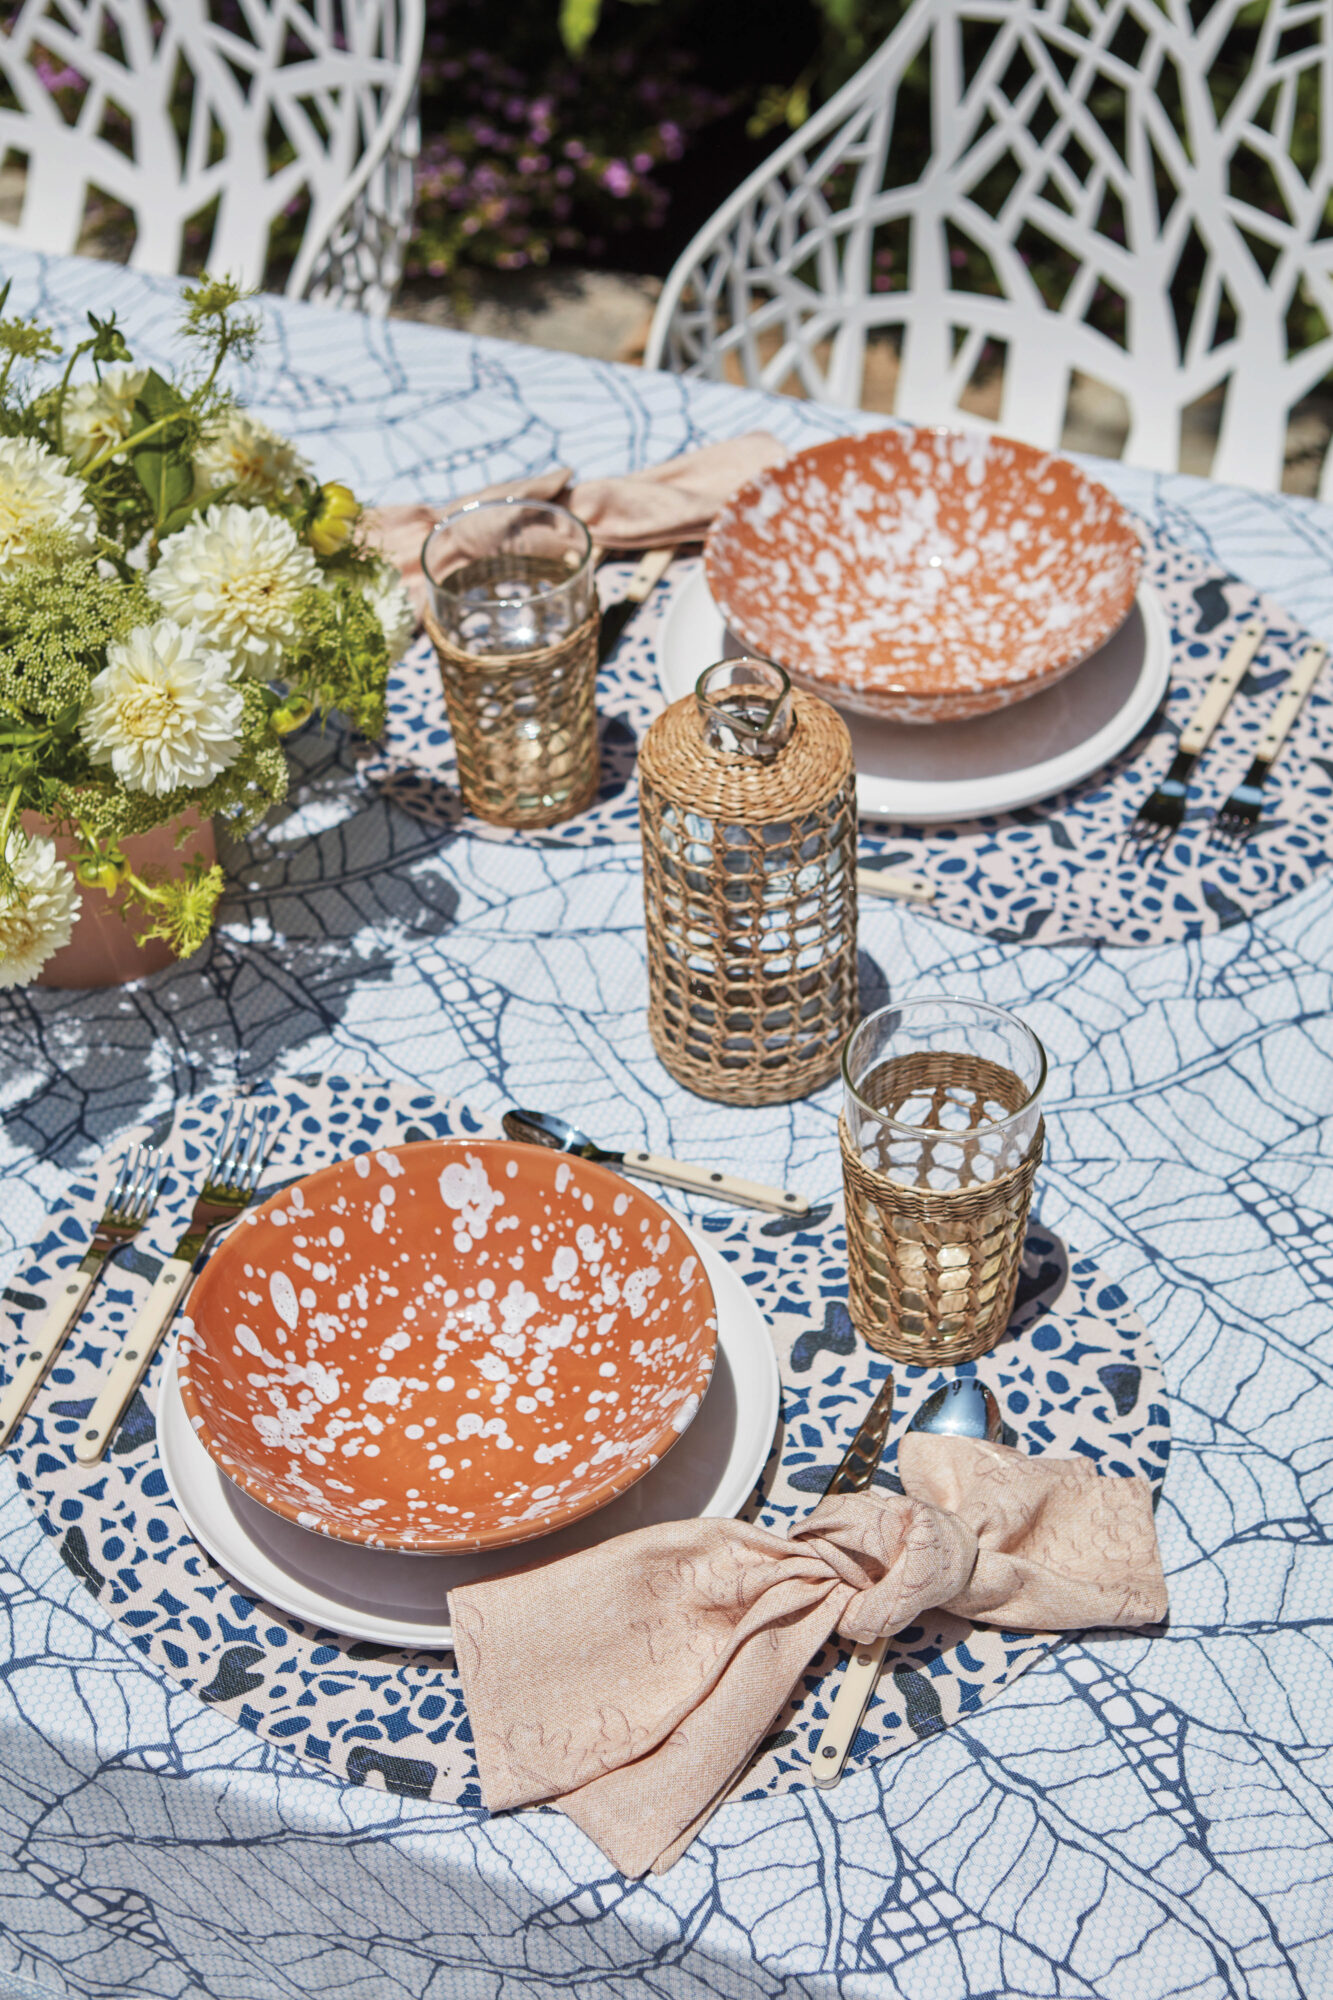 table space with orange dishes